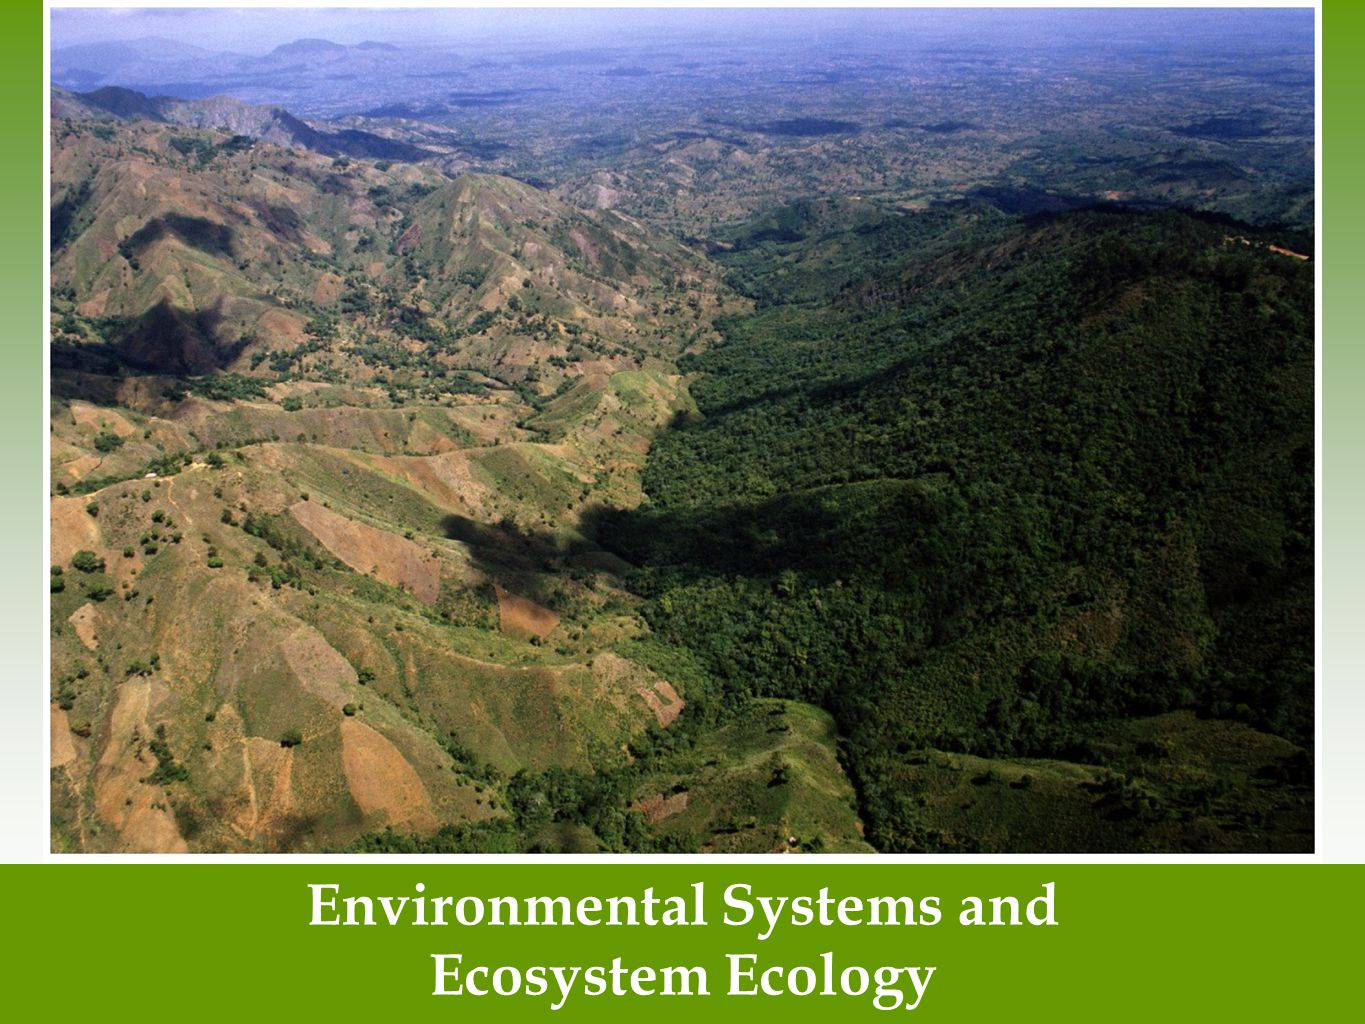 Environmental Systems and Ecosystem Ecology